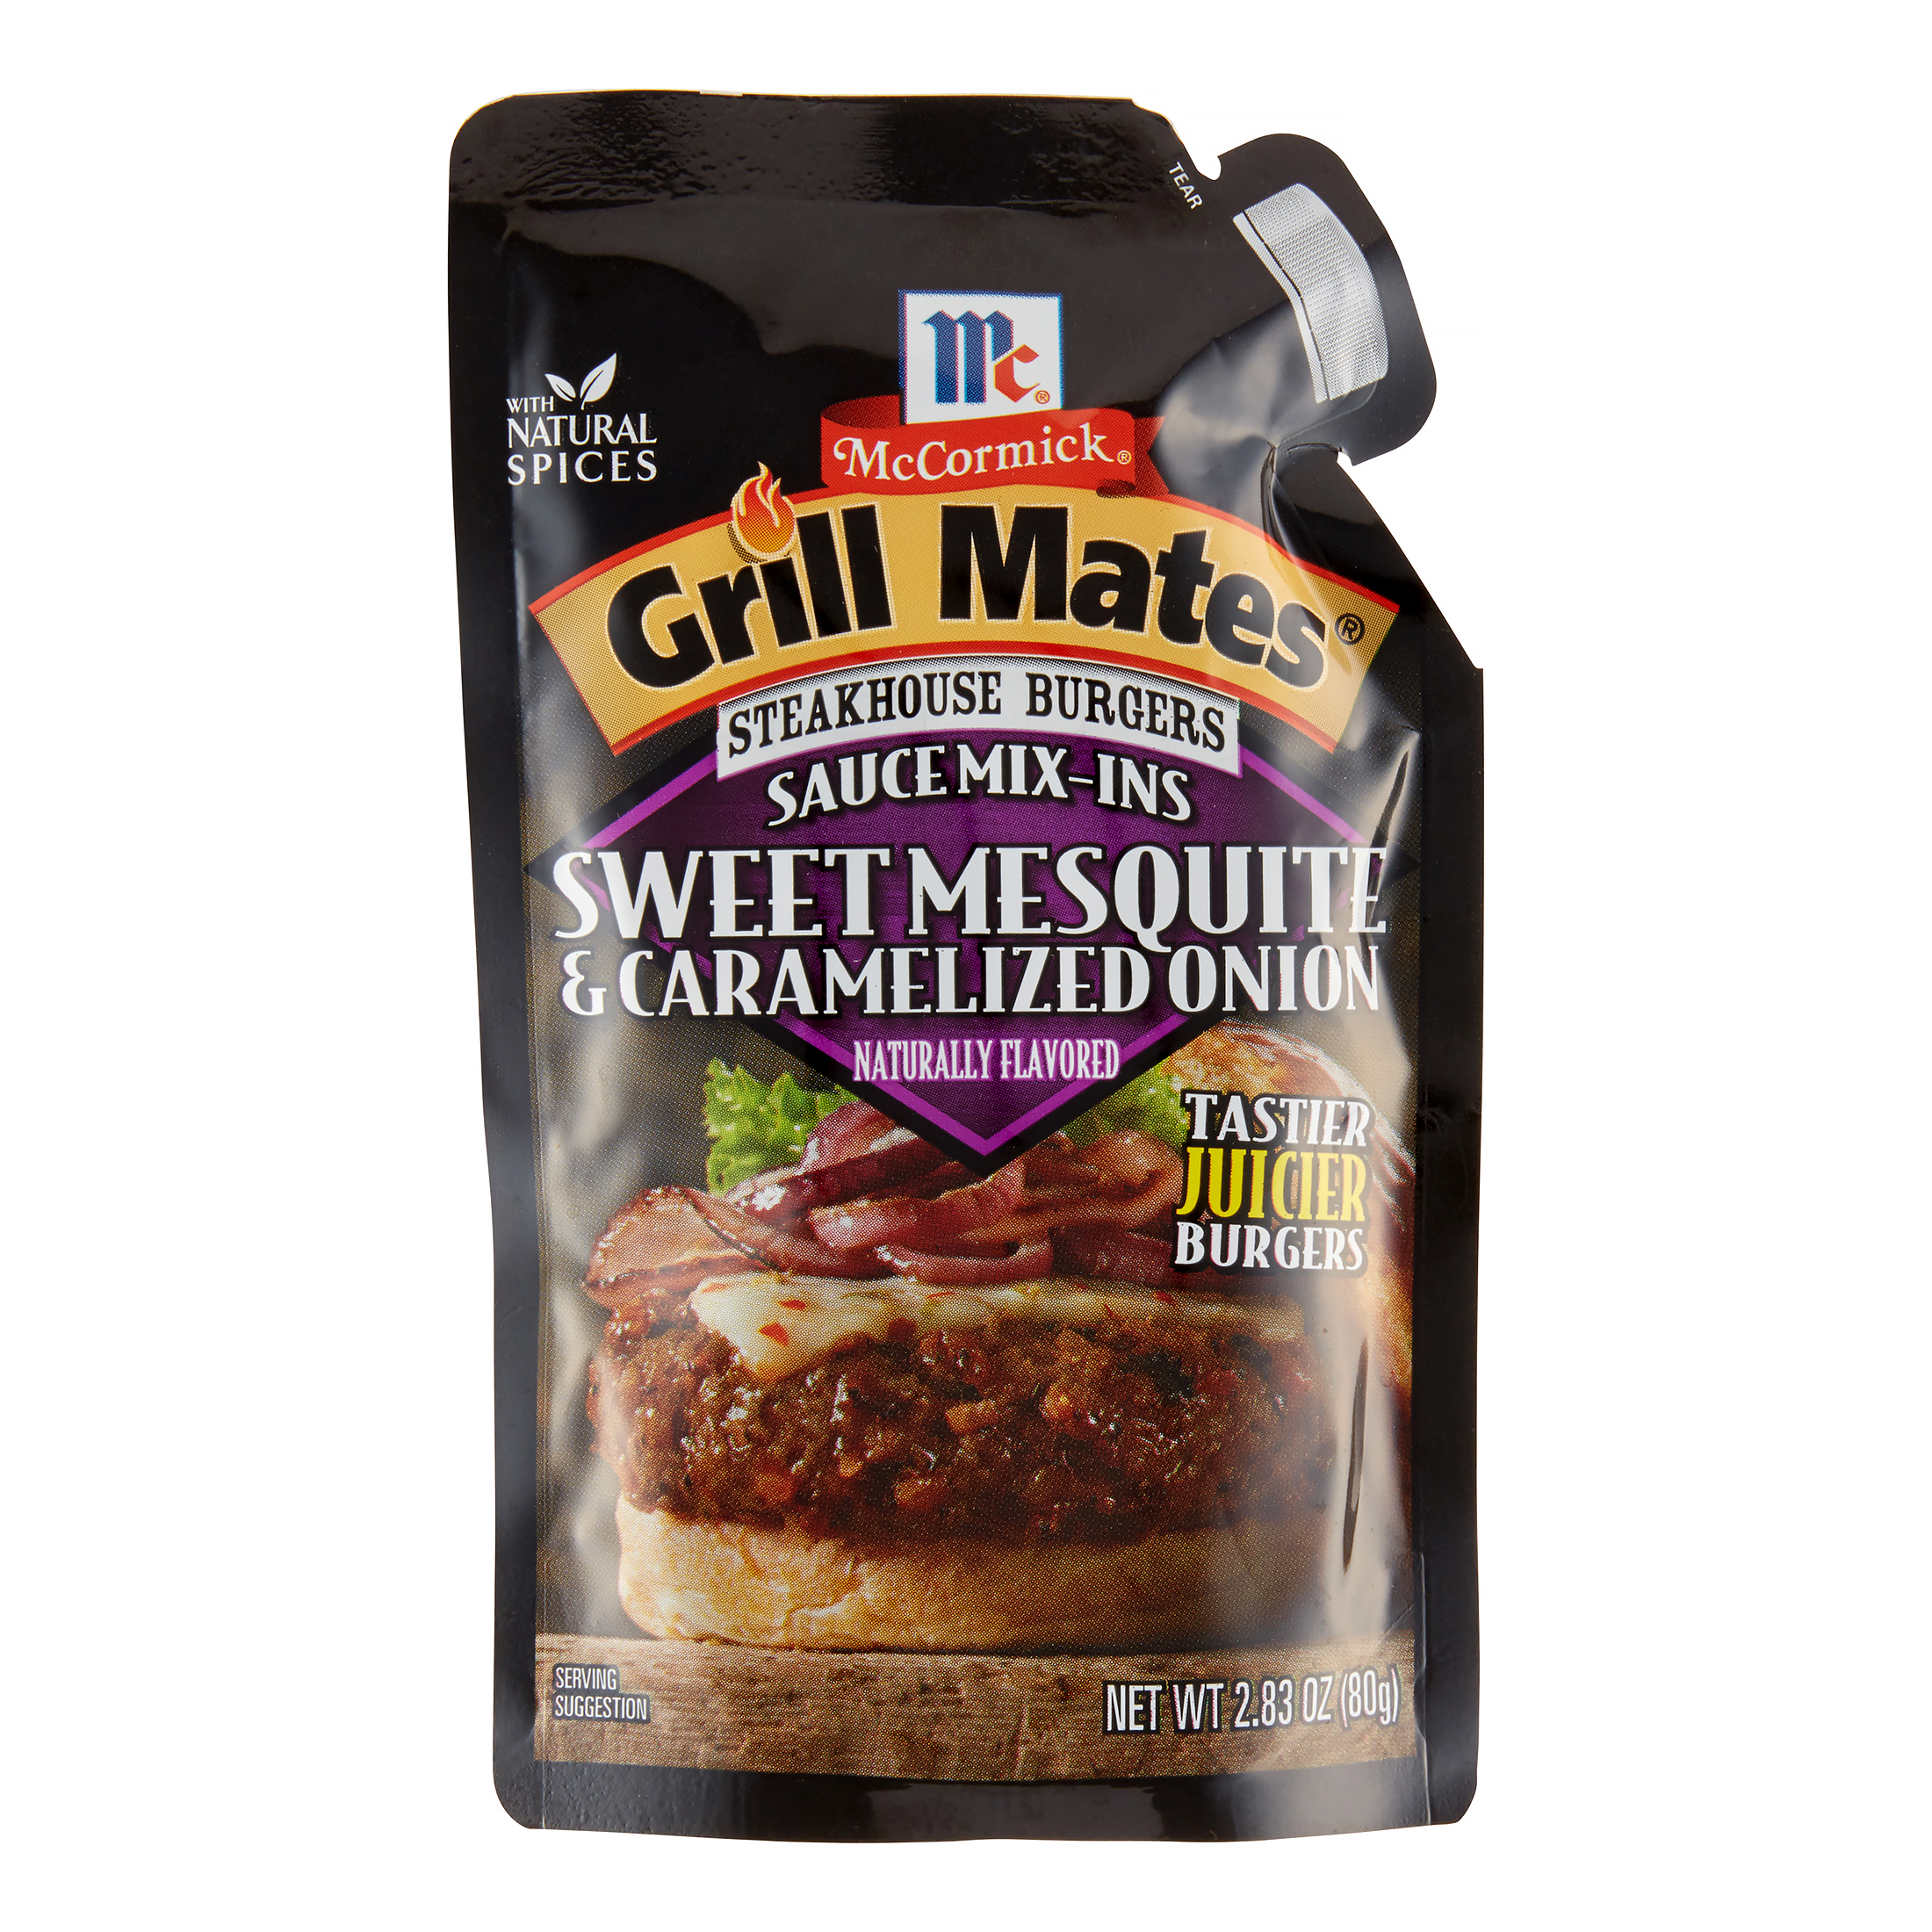 McCormick Grill Mates Sweet Mesquite & Caramelized Onion Steakhouse Burgers Sauce Mix-Ins,... by Mccormick